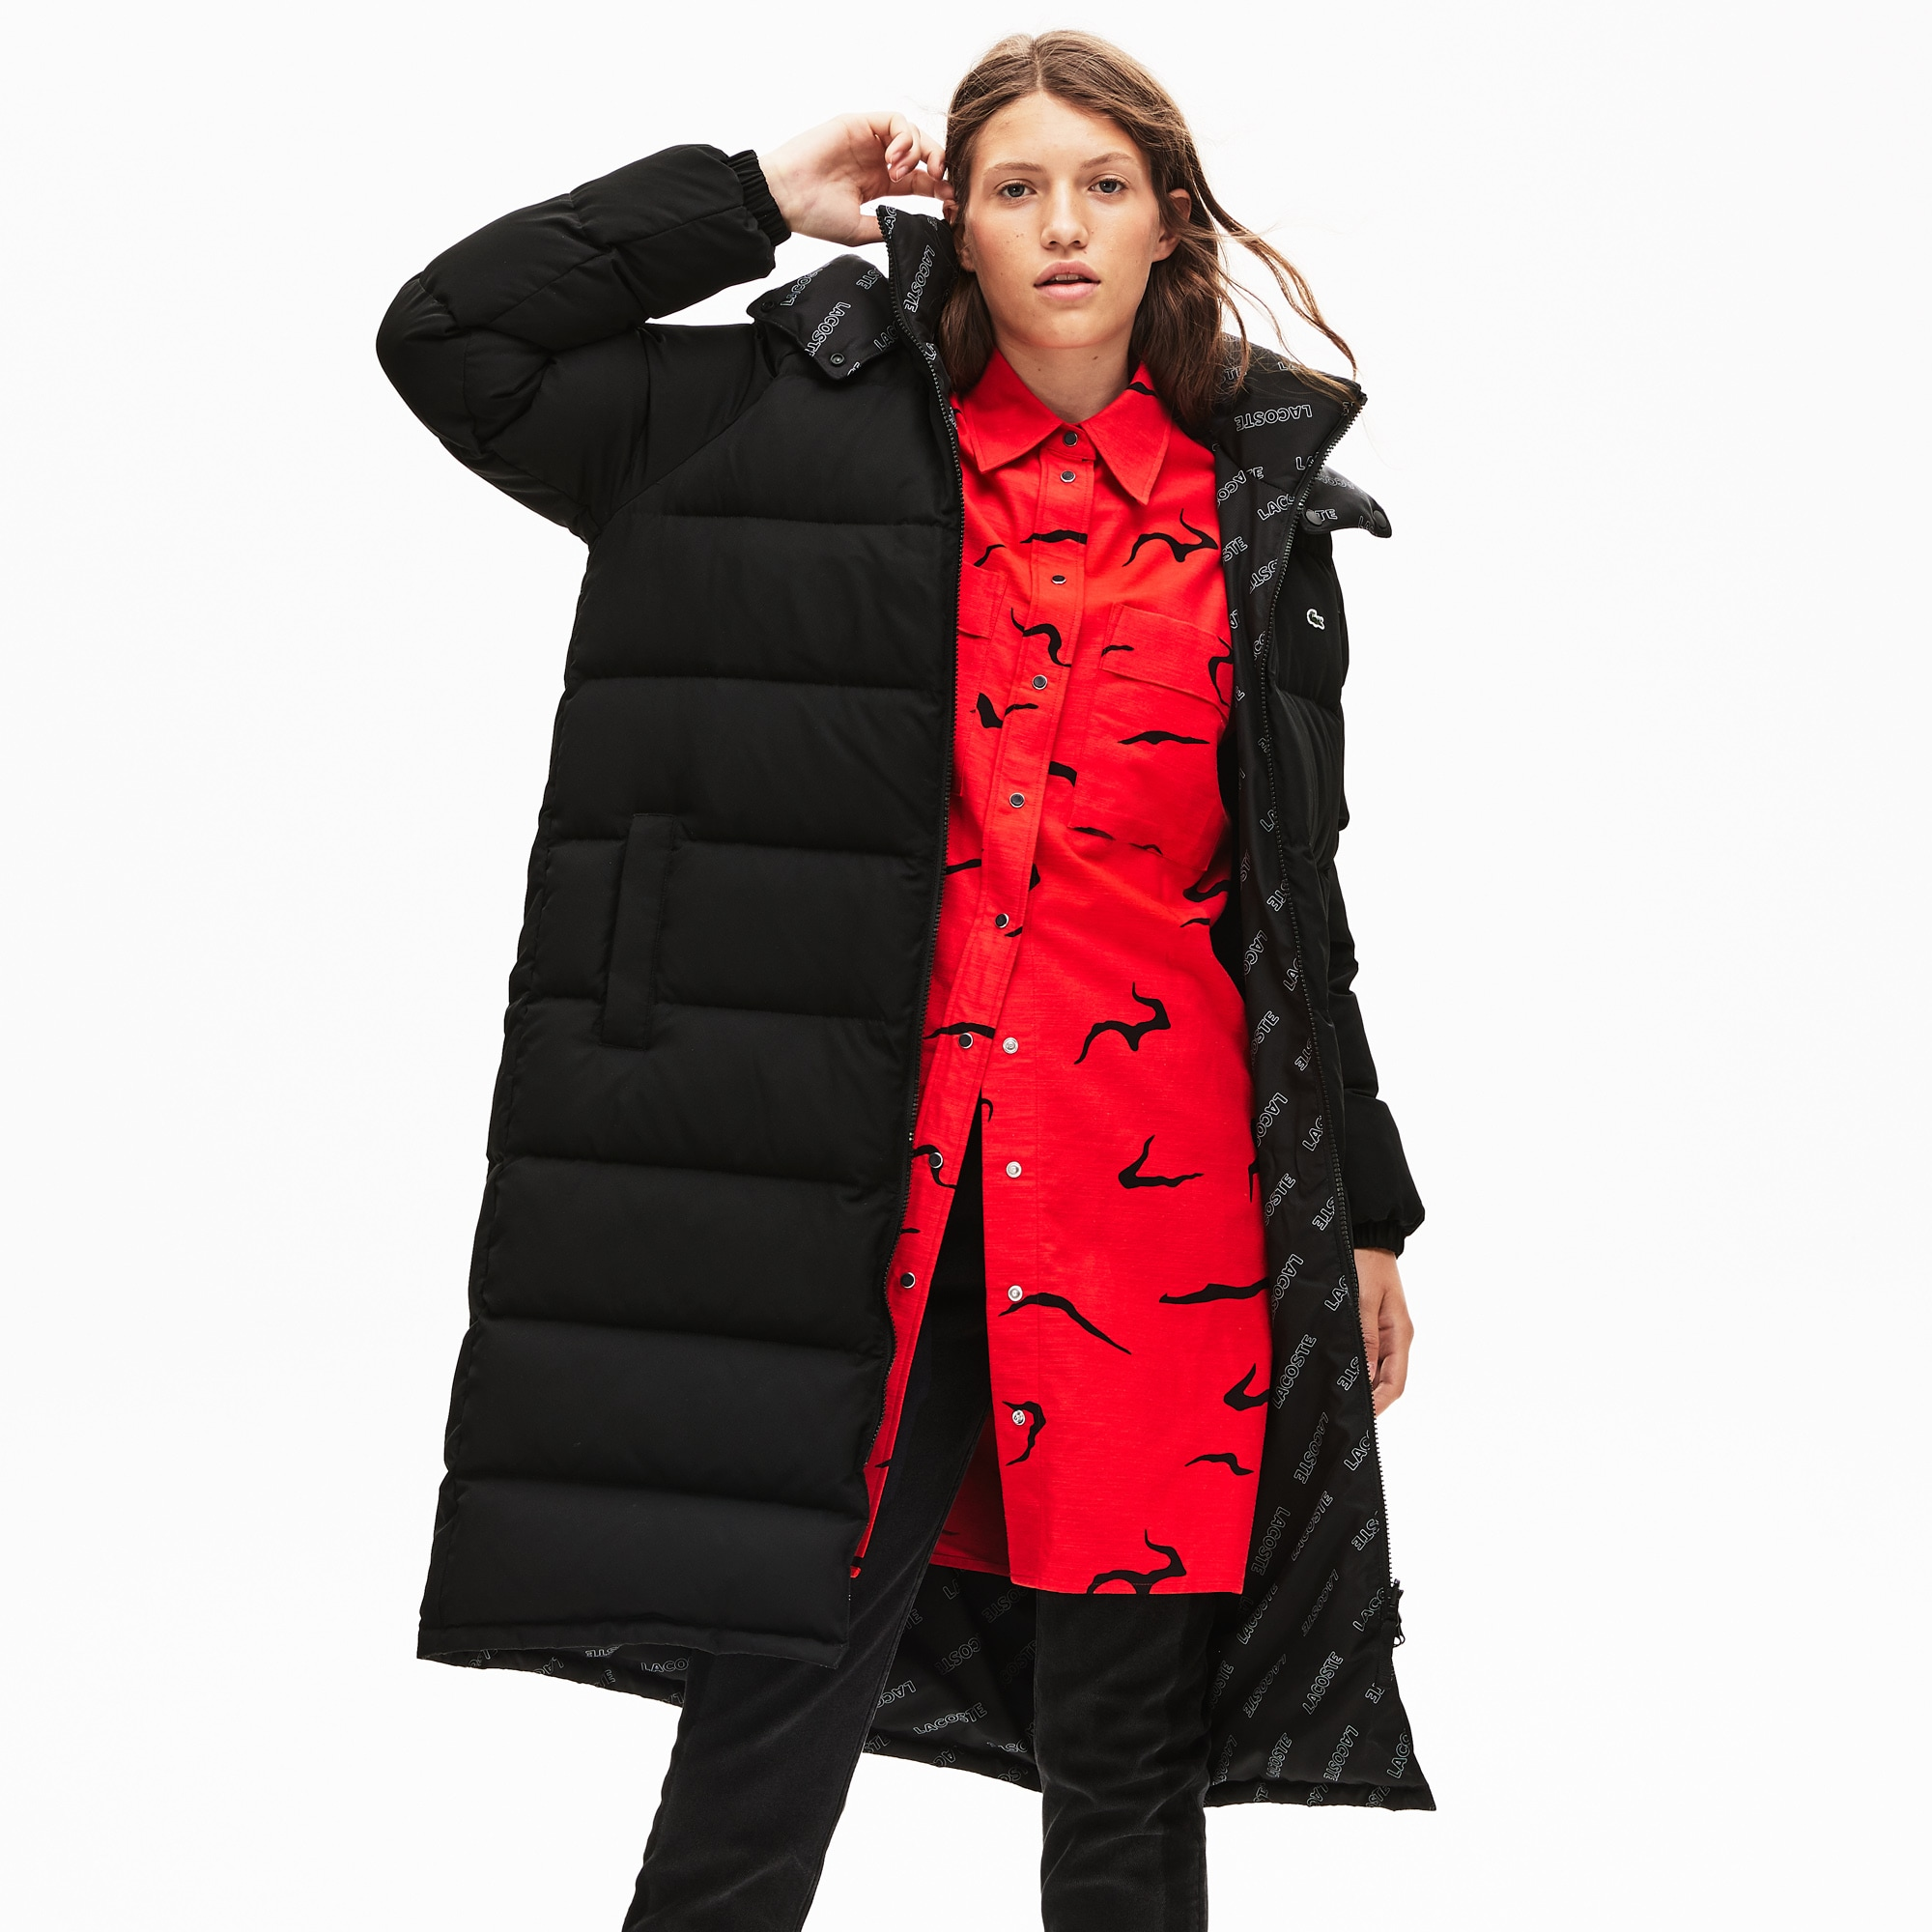 15576dfed3 Women's Lacoste LIVE Print Lining Long Reversible Quilted Jacket